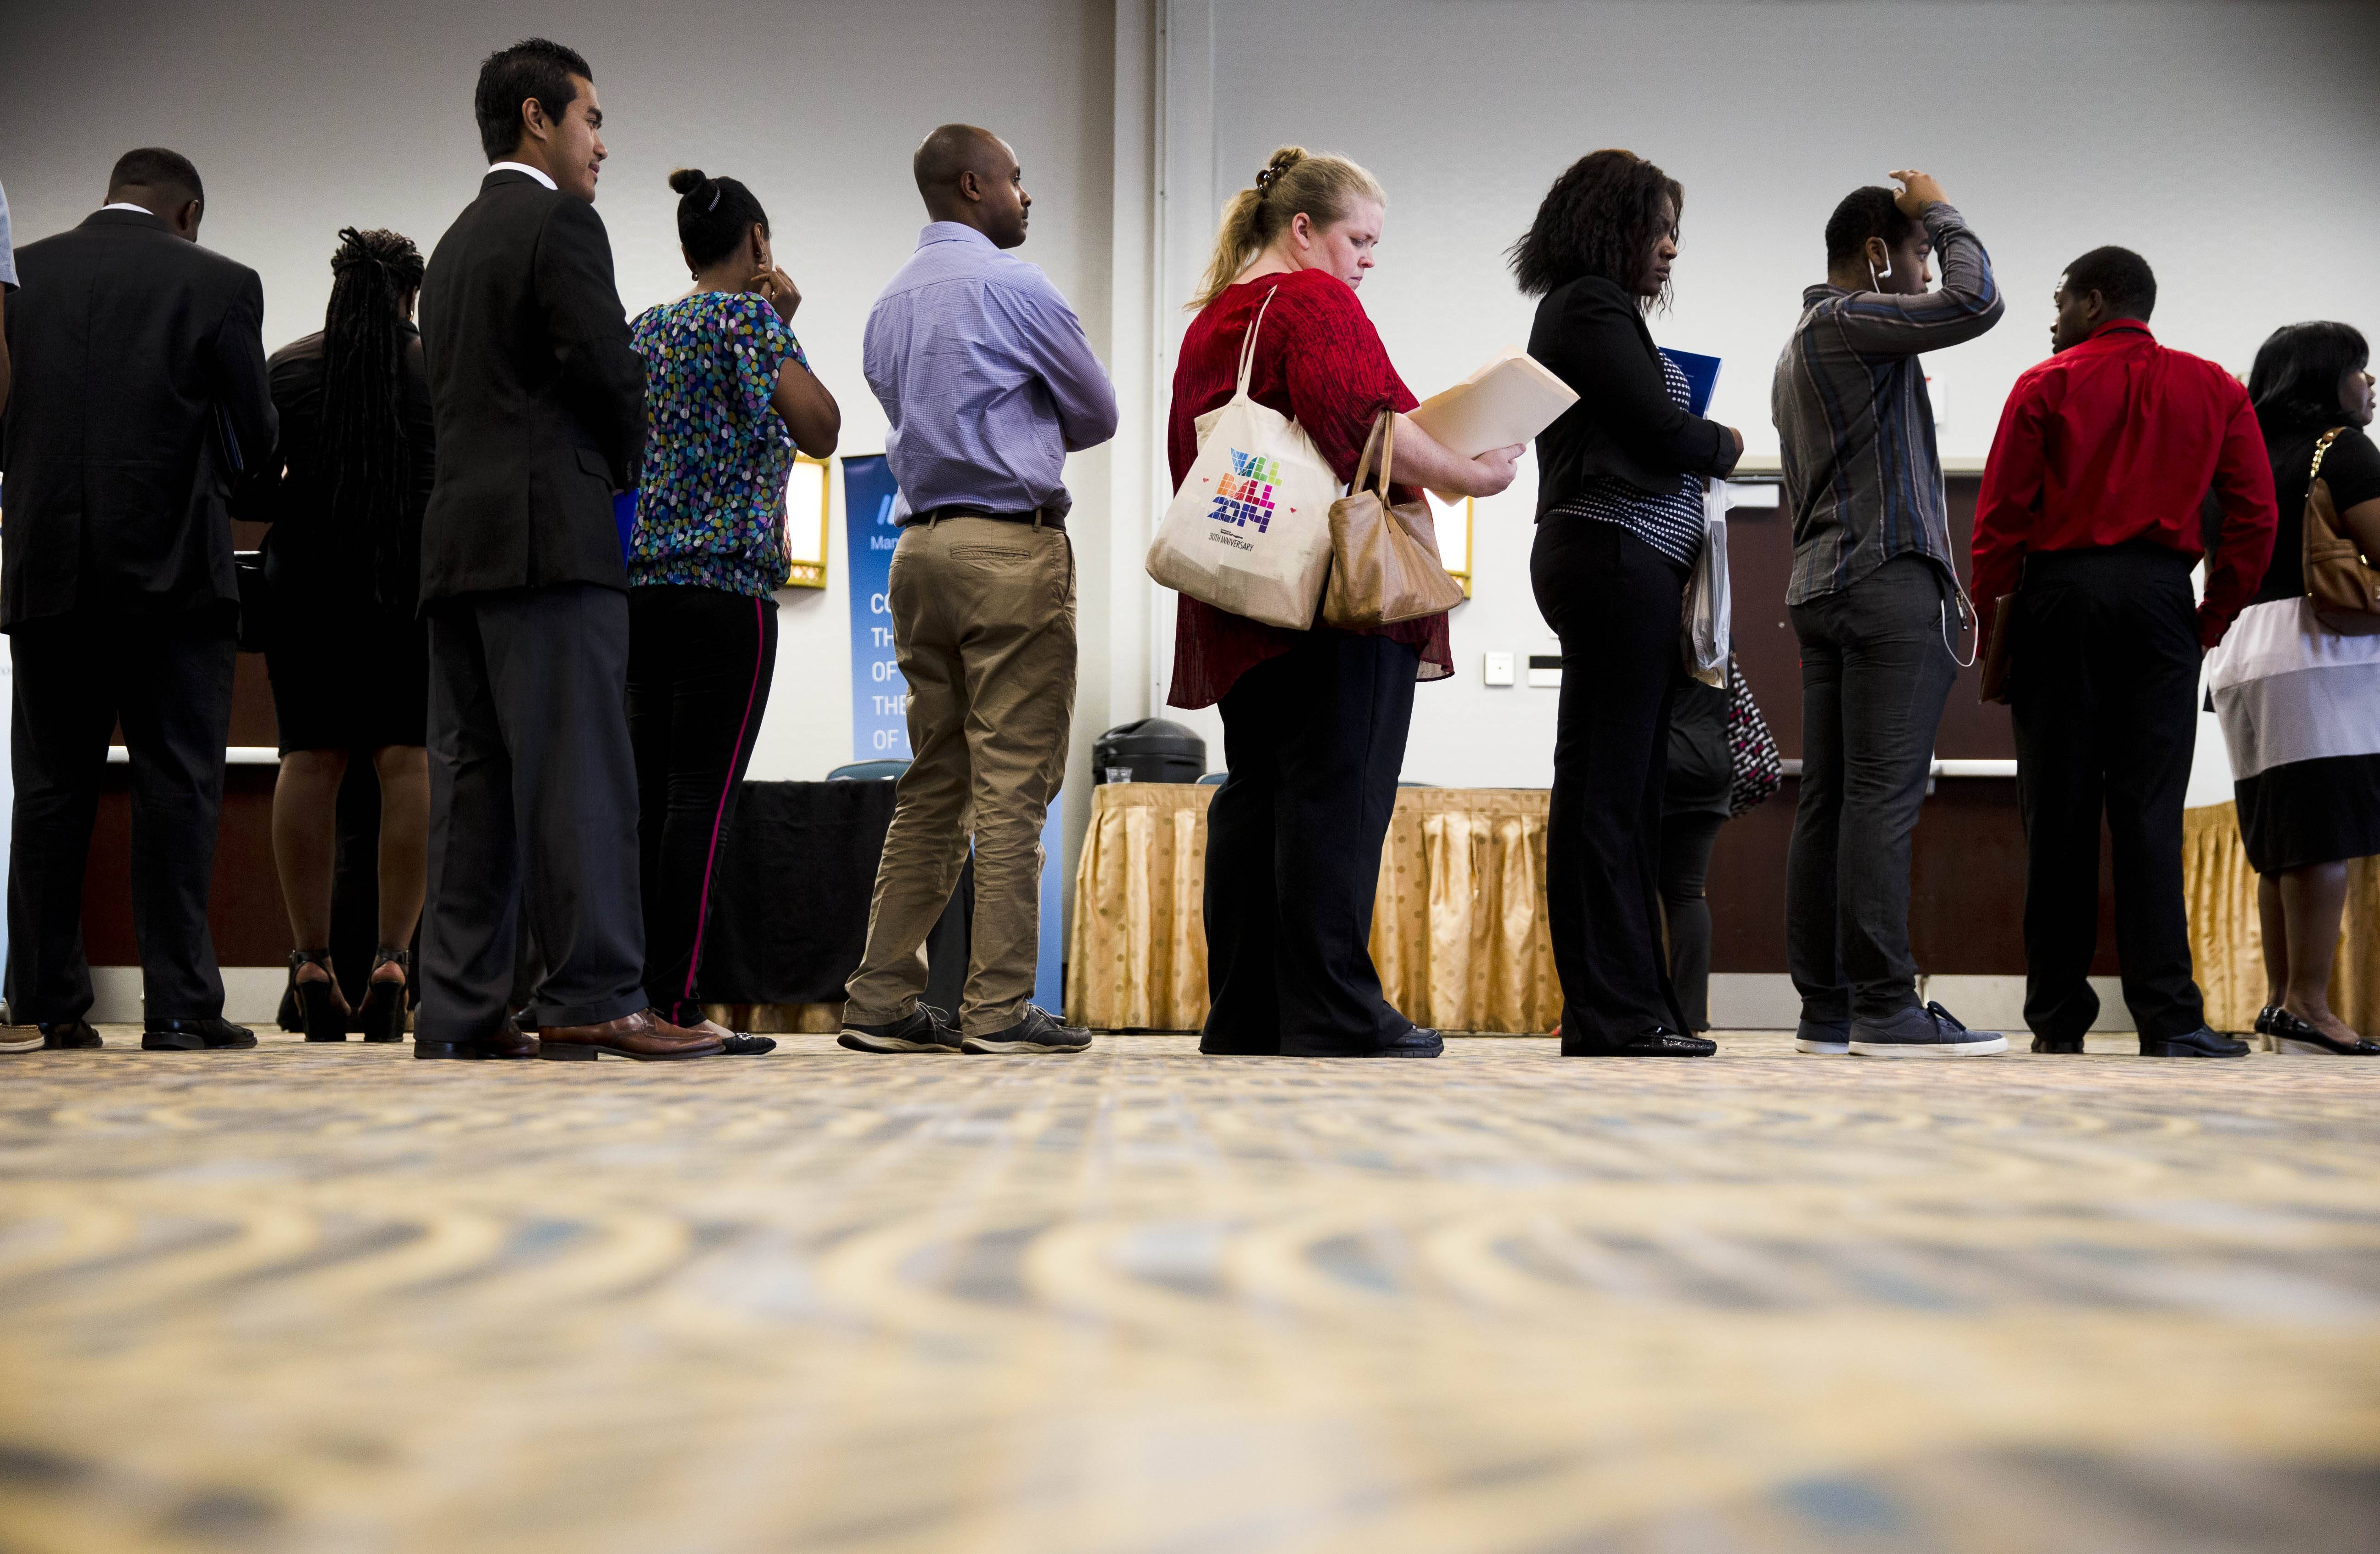 U.S. employers extended their solid hiring into July by adding 209,000 jobs. It was the sixth straight month of job growth above 200,000, evidence that businesses are gradually shedding the caution that had marked the 5-year-old recovery.